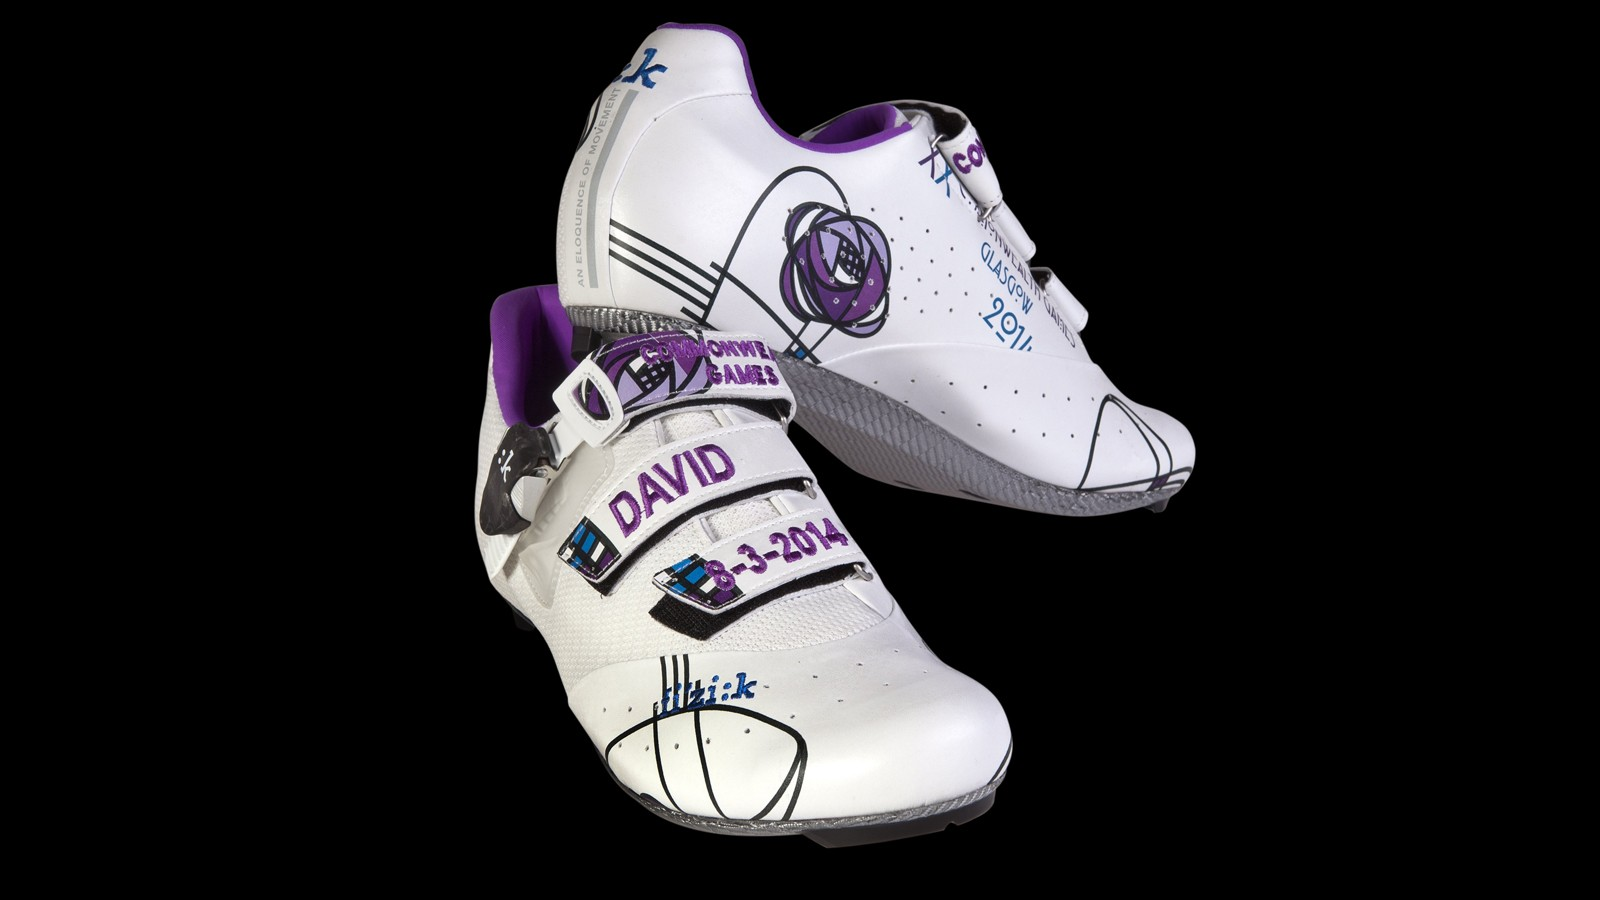 The Commonwealth Games shoe is inspired by one of Scotland's great designers, Charles Rennie Mackintosh